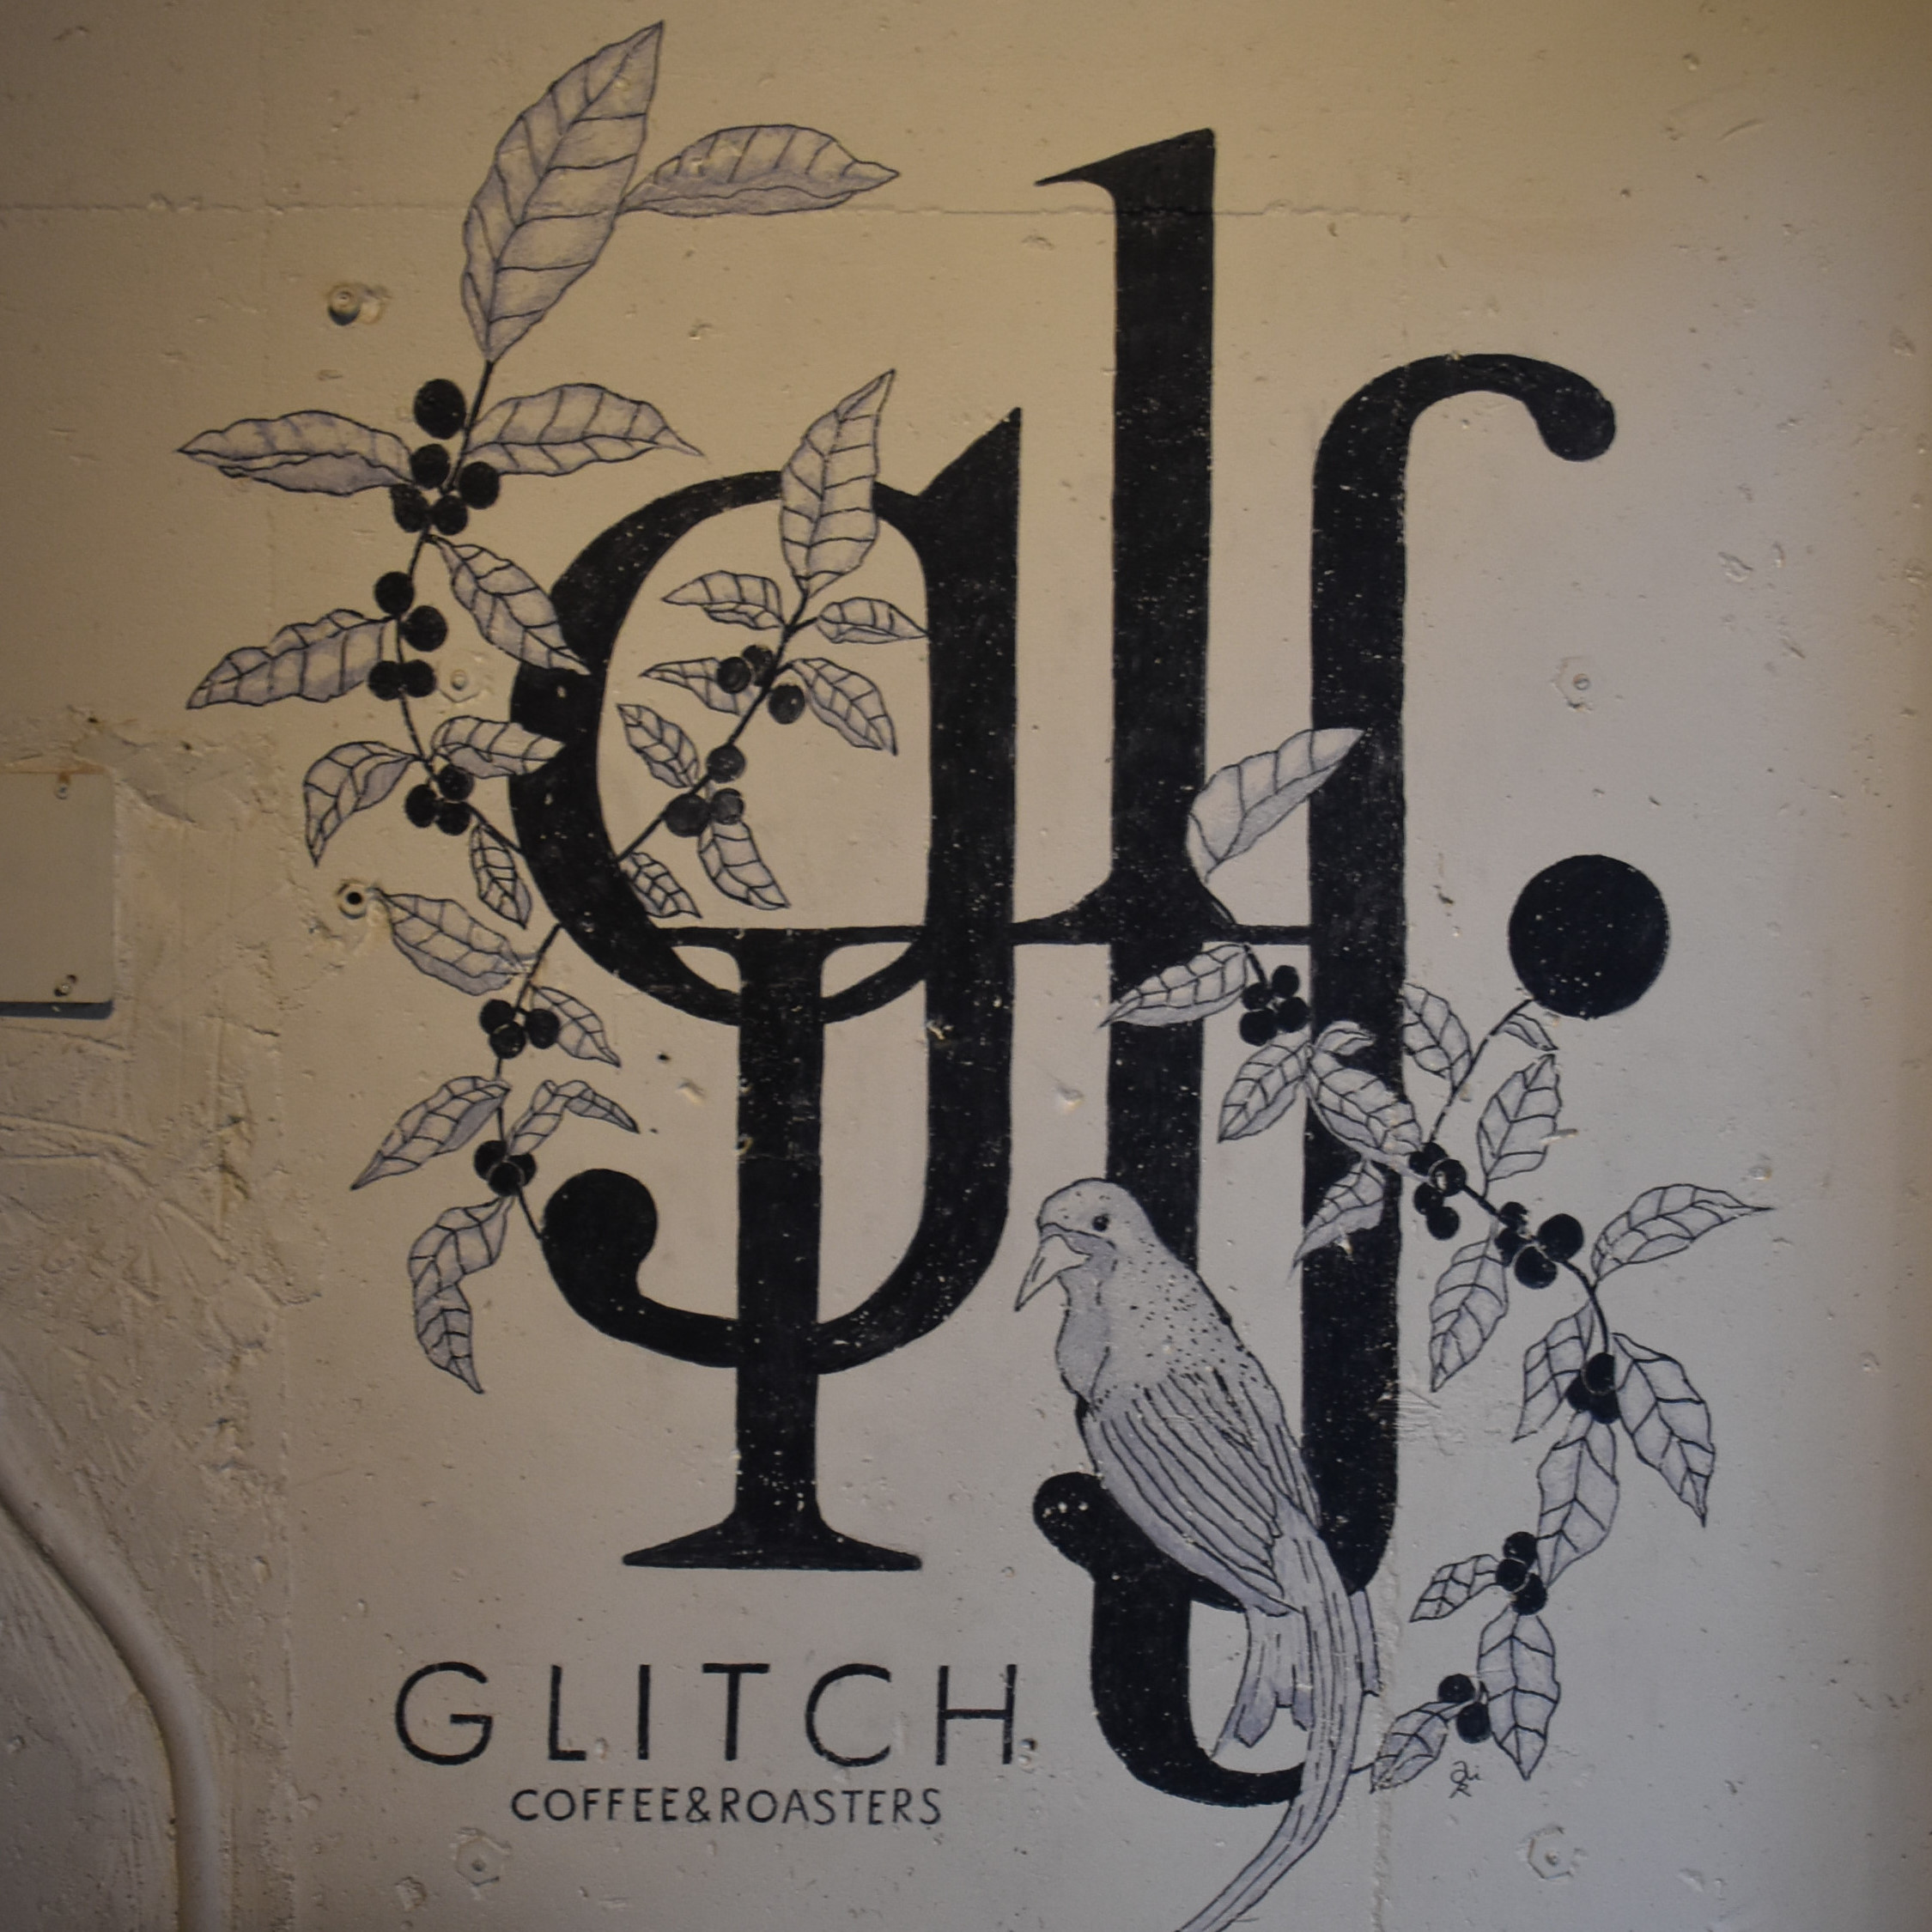 The Glitch Coffee & Roasters logo from the wall next to the roaster.